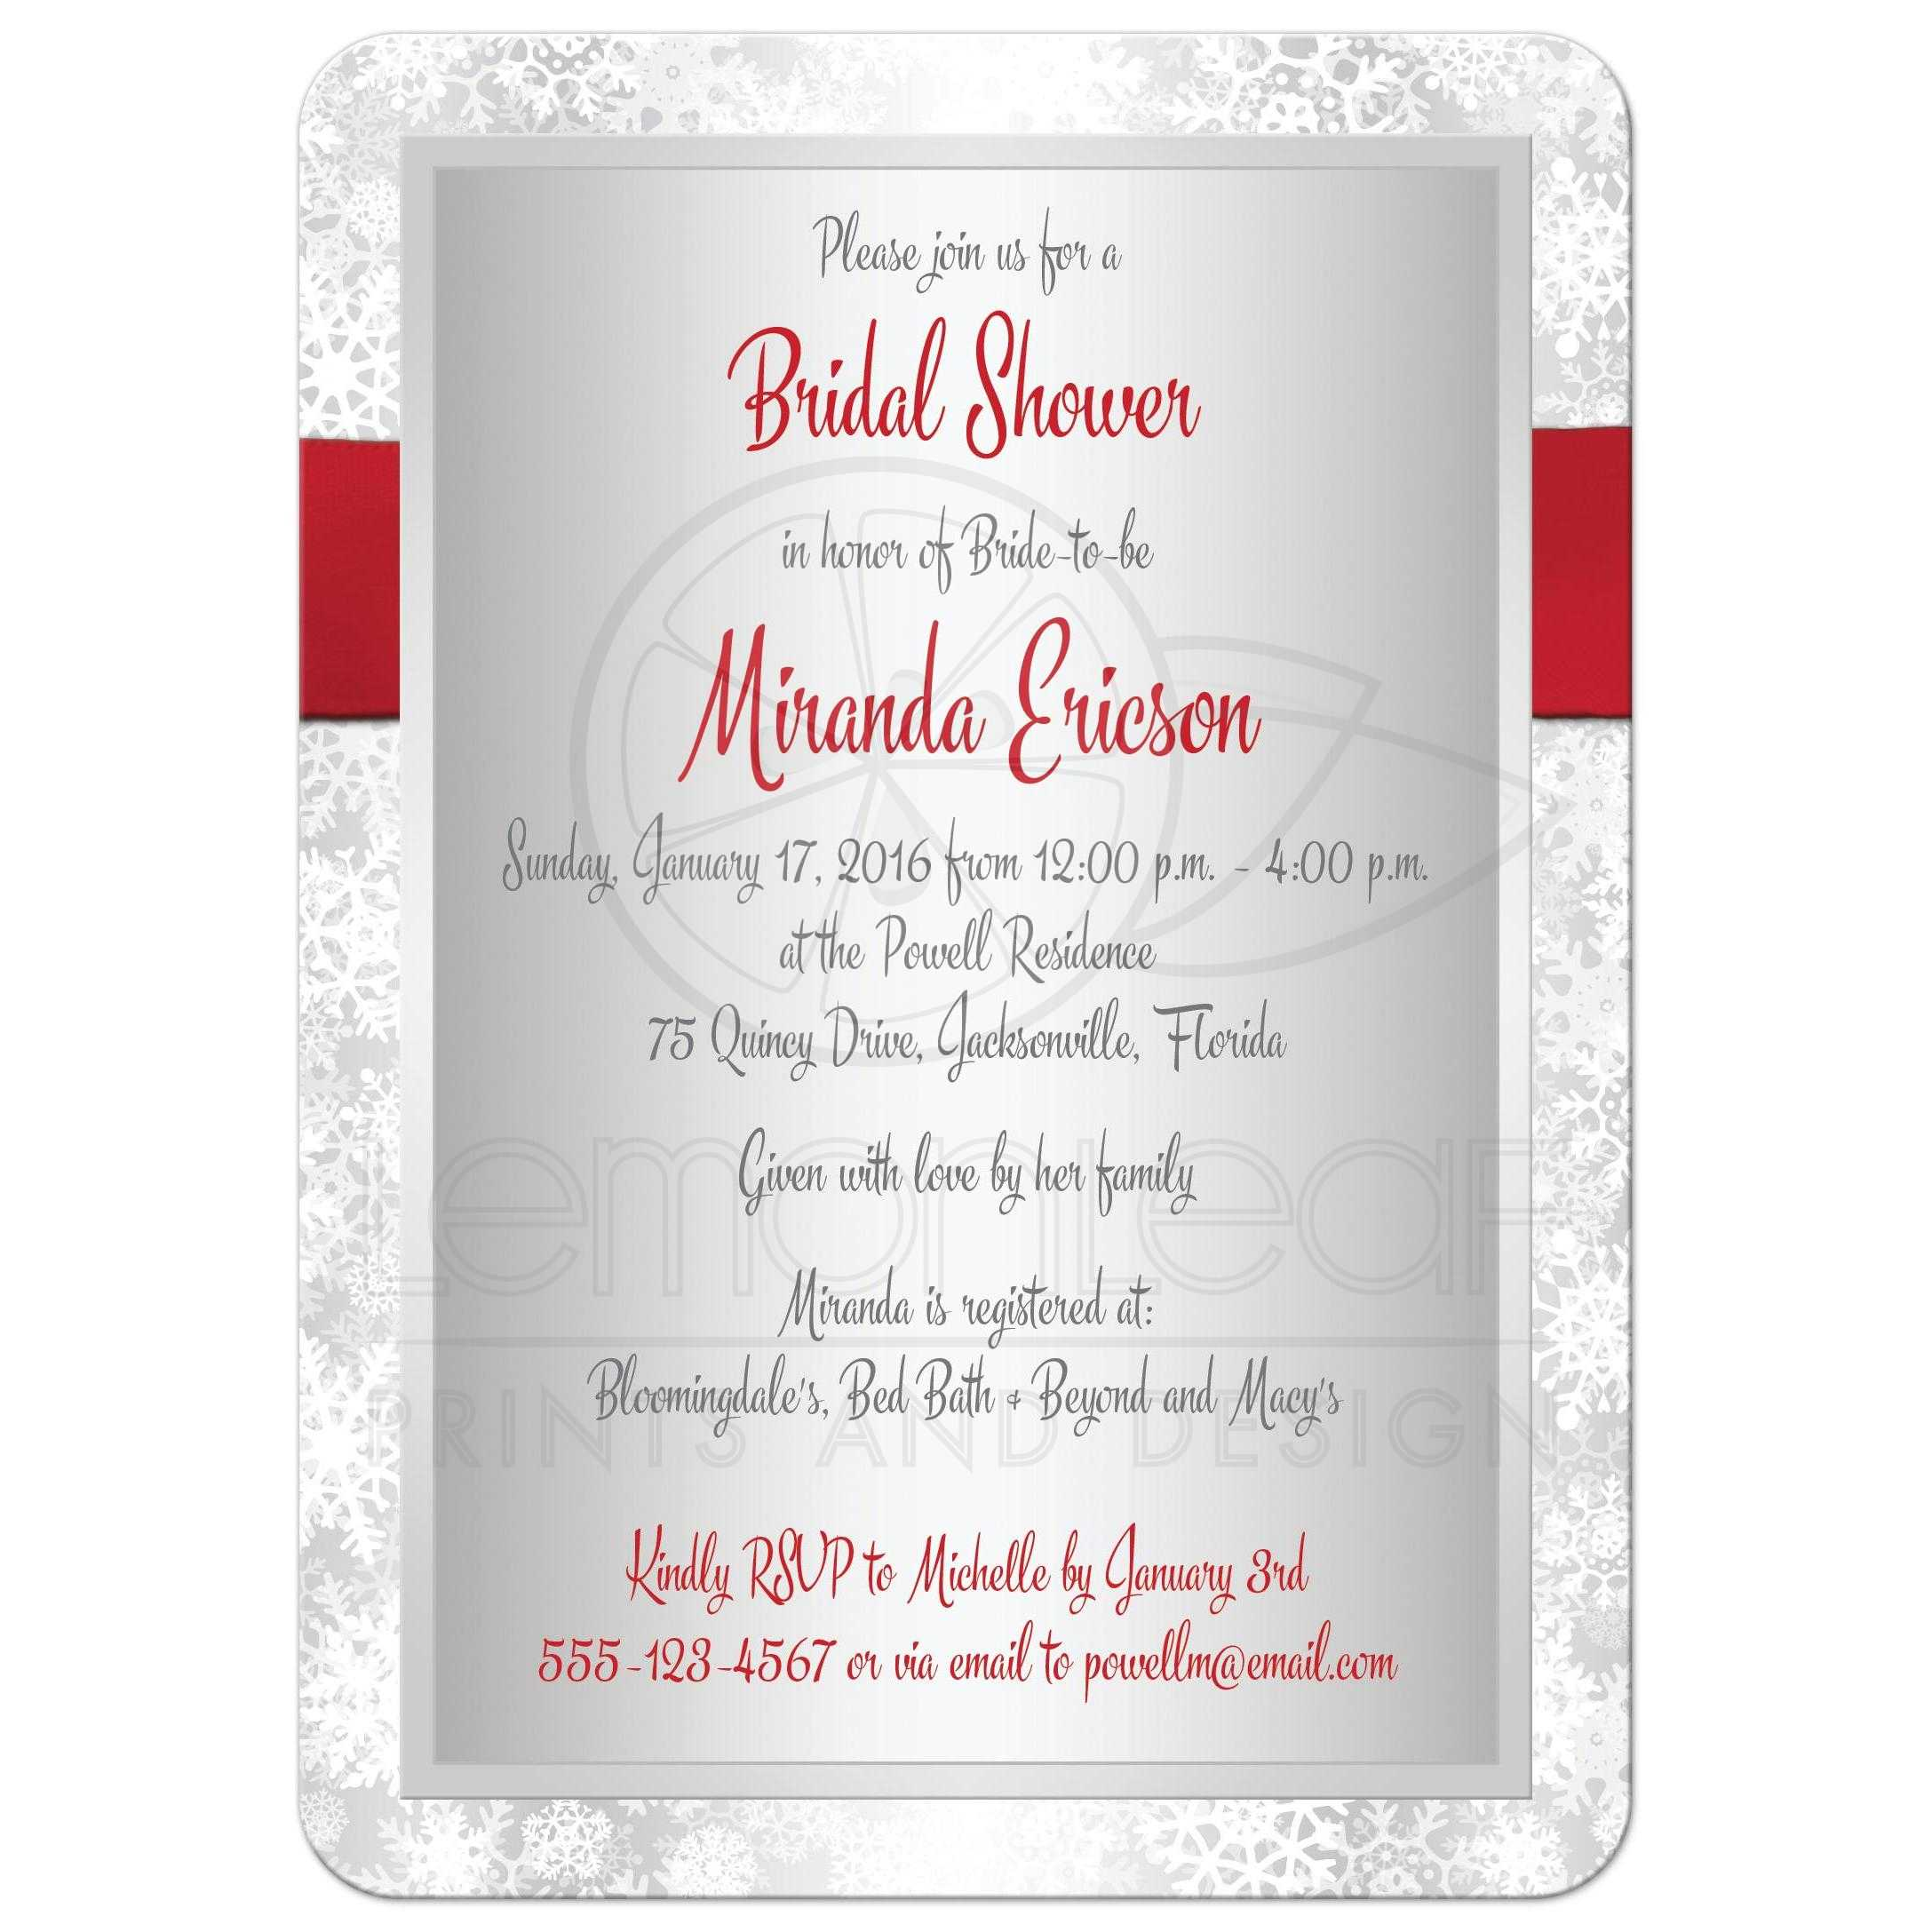 kitchen bridal shower invitations sink accessories invitation | red, gray, white simulated ...